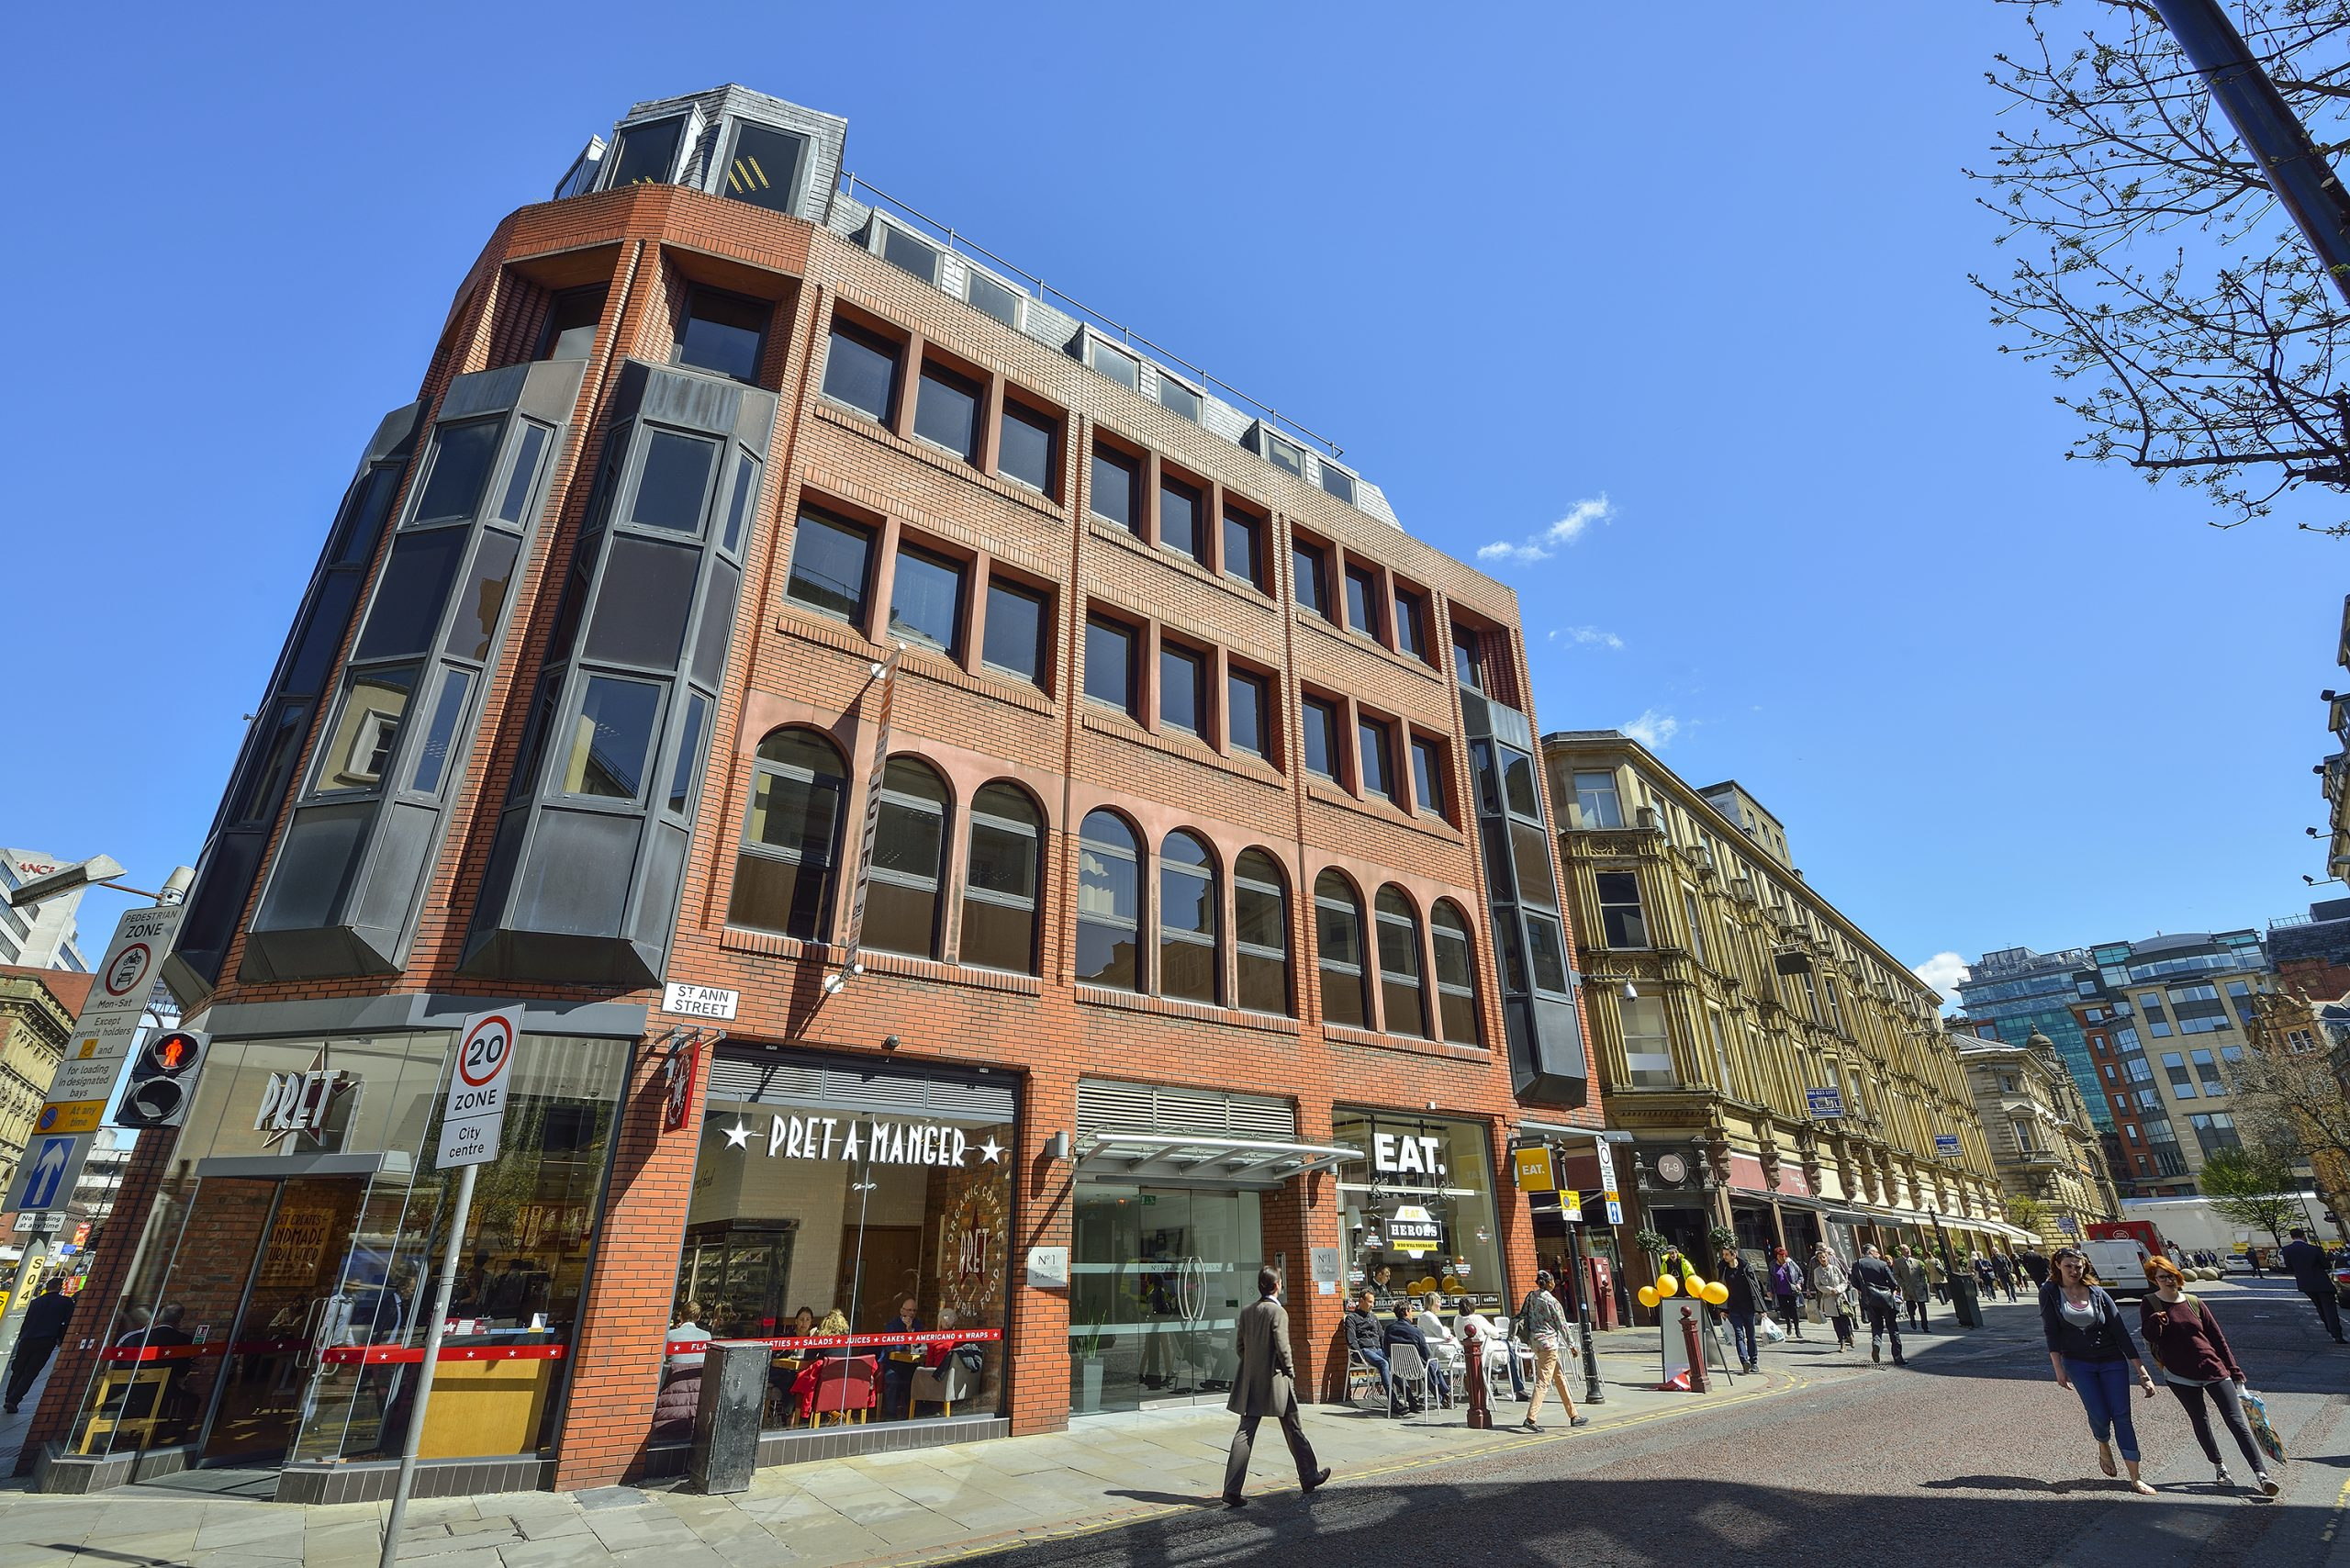 No 1 St Anns, Manchester offices